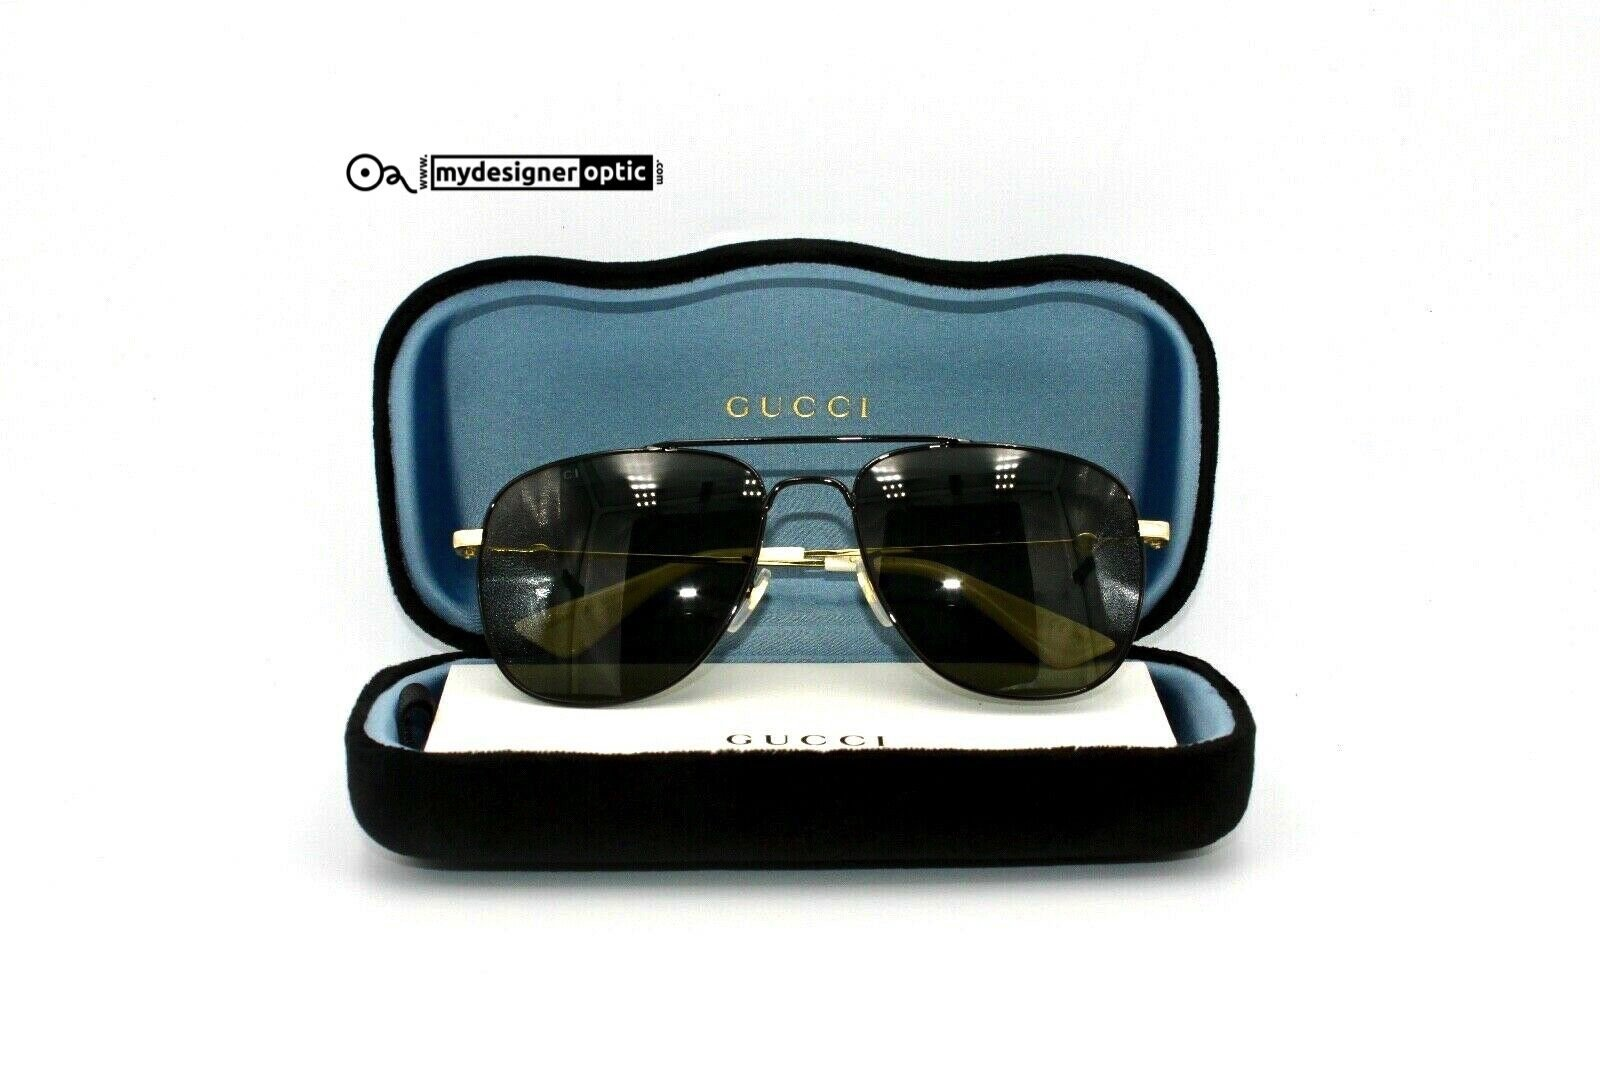 Gucci Sunglasses GG0514S 001 57-18-140 Made in Japan Cat.3 - Mydesigneroptic